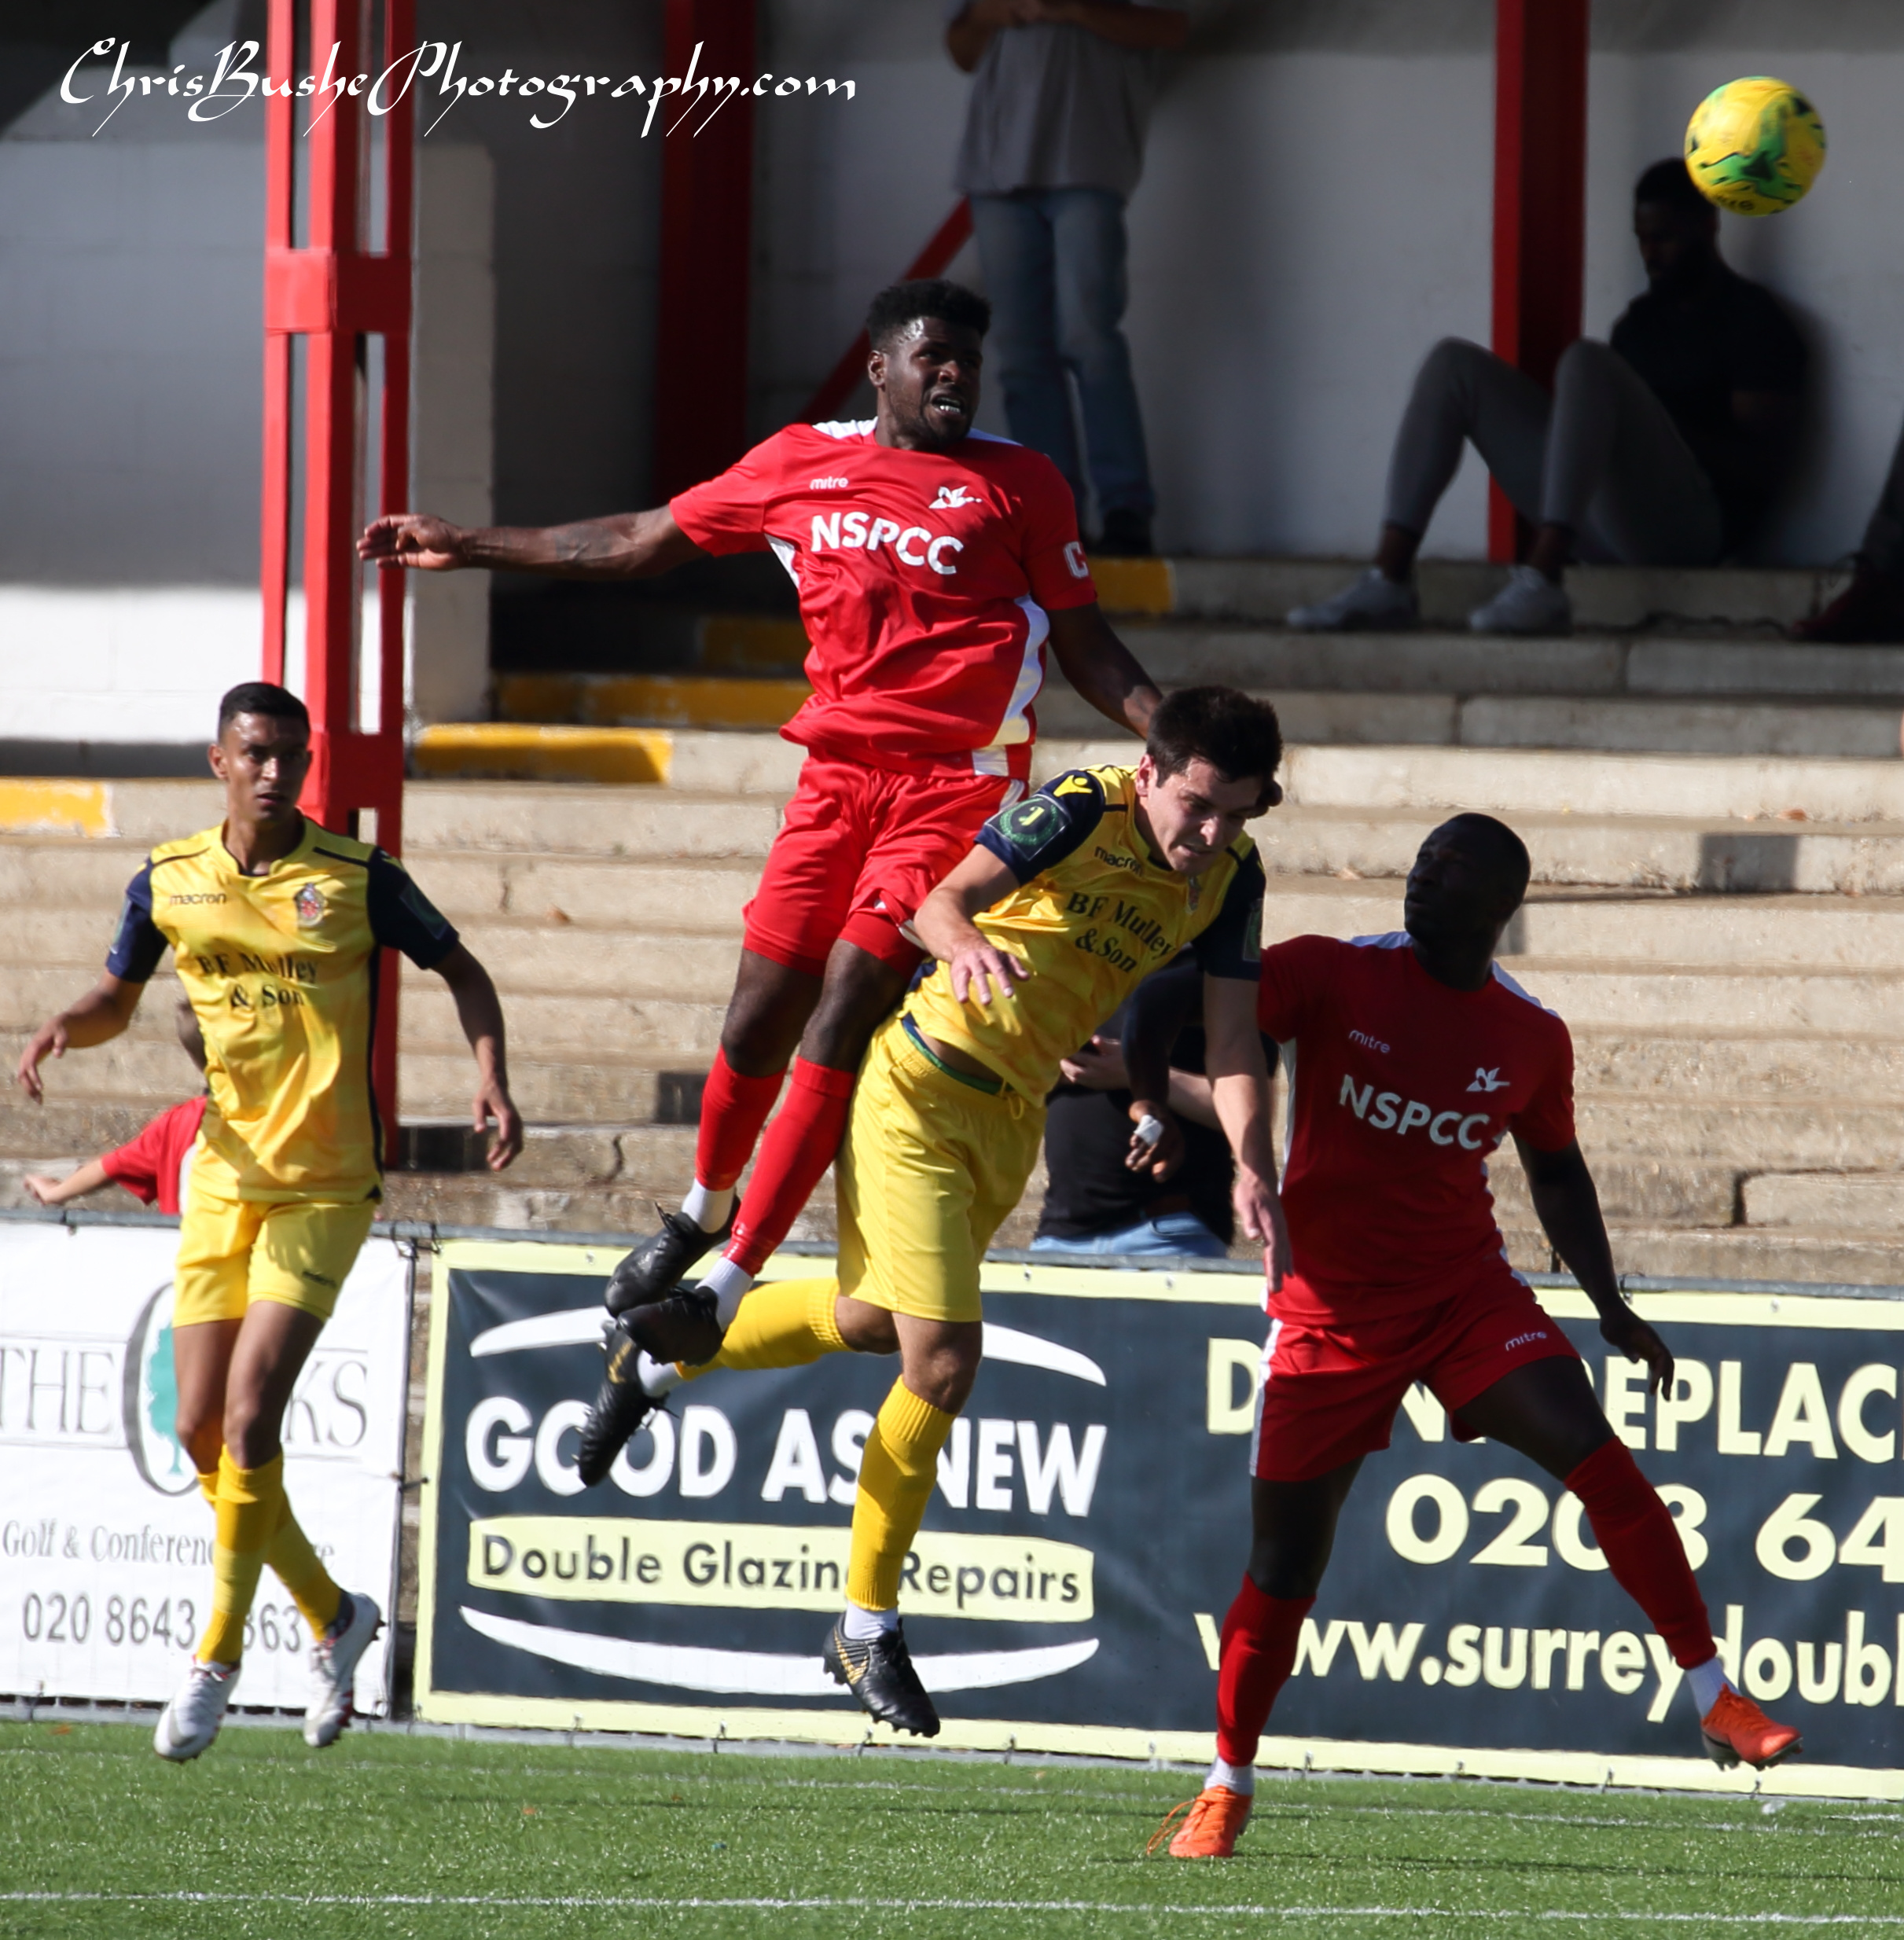 Paris Hamilton downes Carshalton captain heads